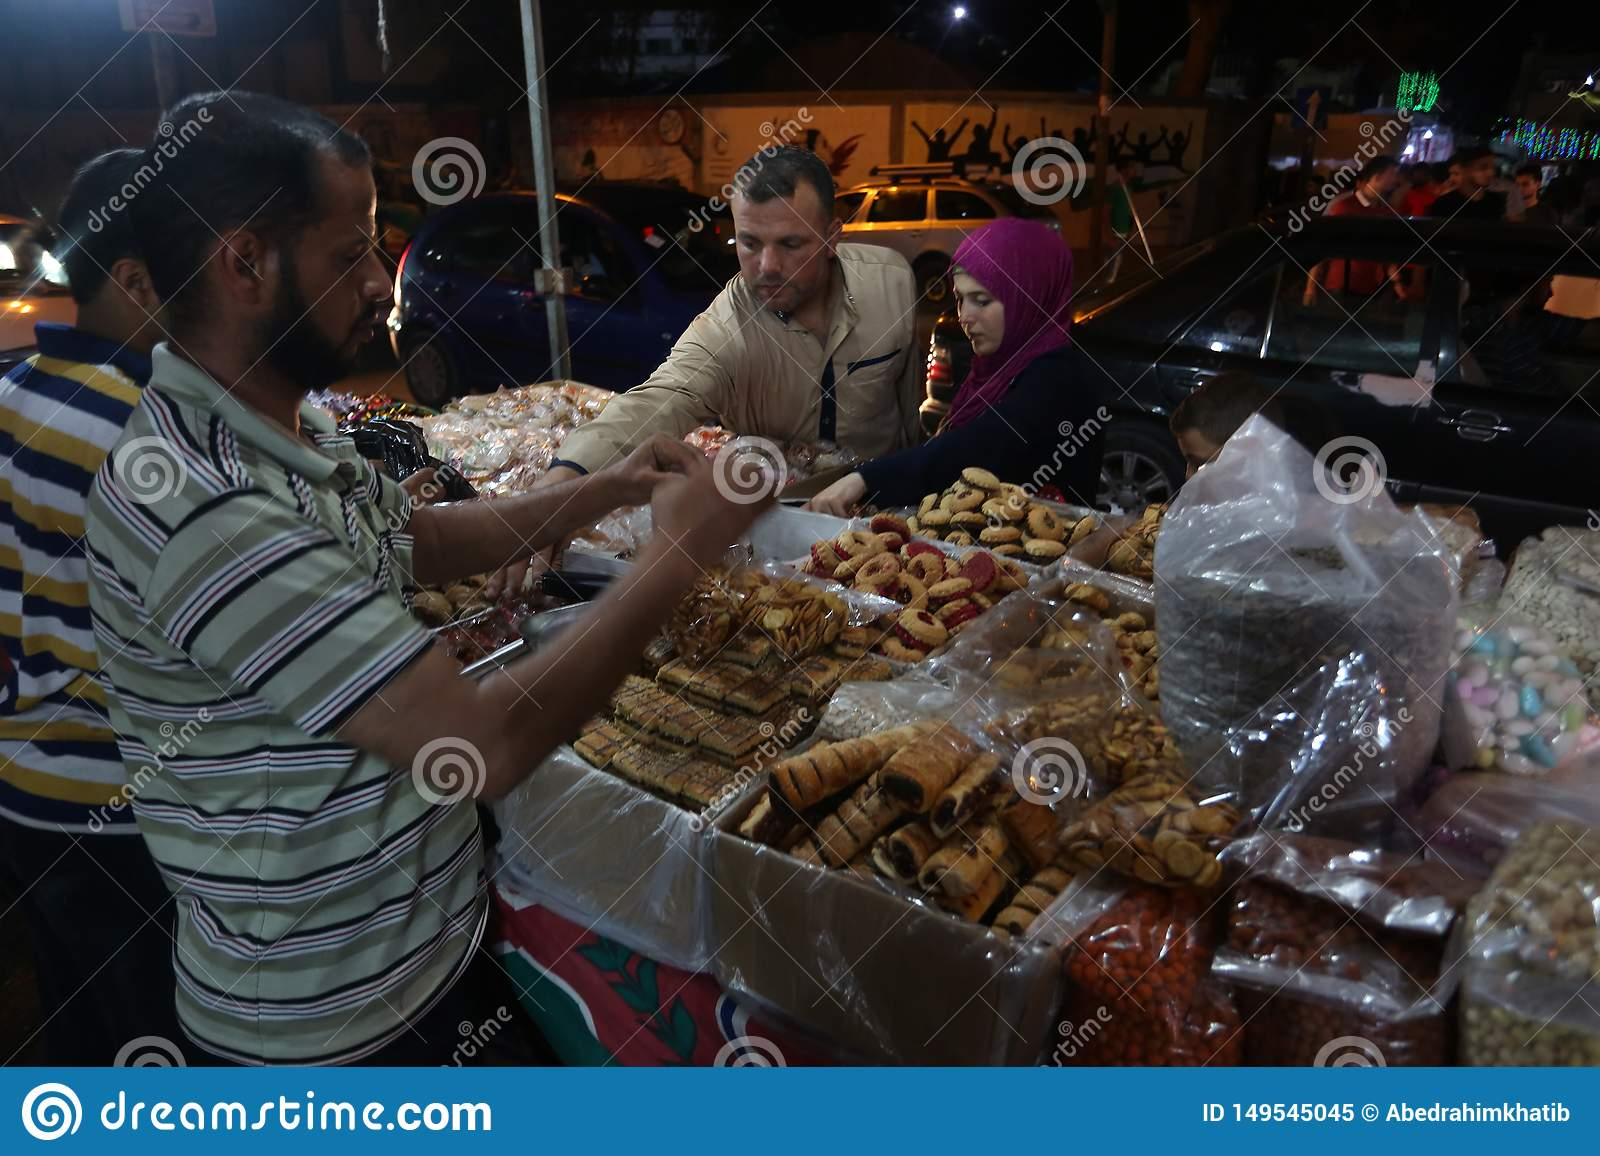 Muslims around the world prepare for the Eid al-Fitr which marks the end of the fasting month of Ramadan